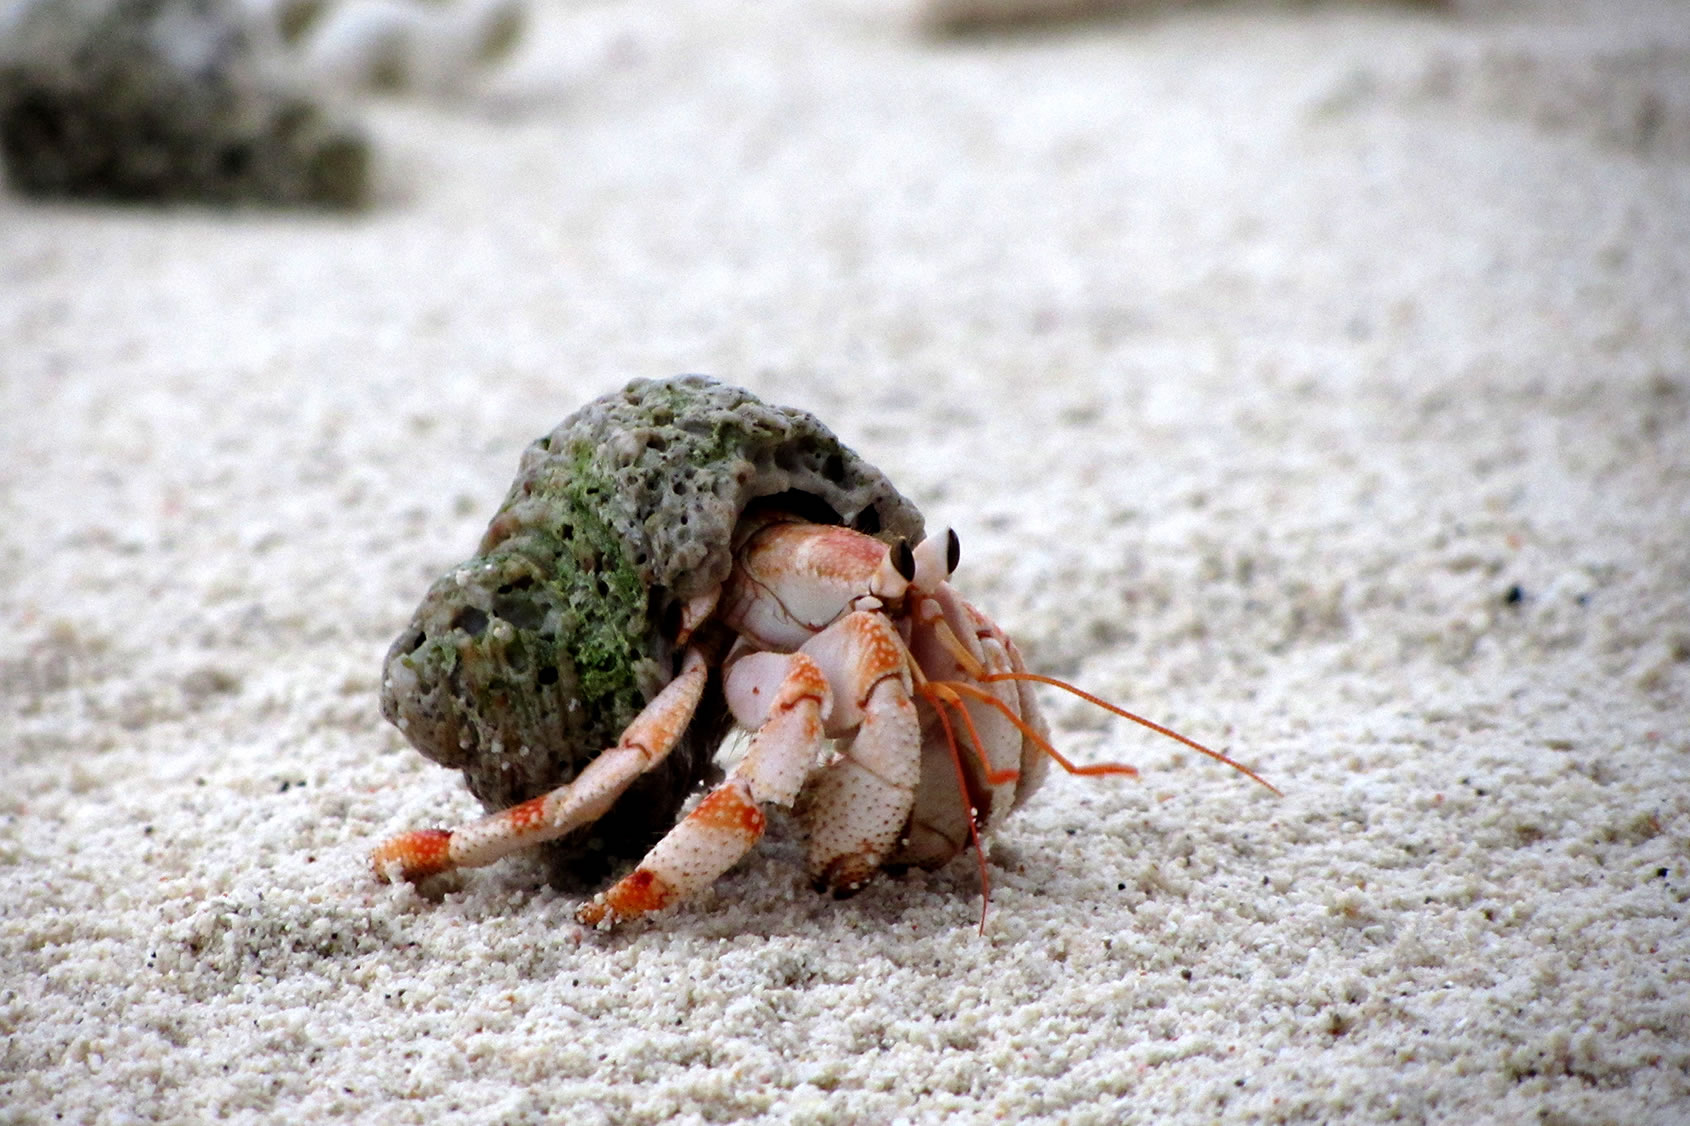 Choosing a Home for Your Hermit Crab